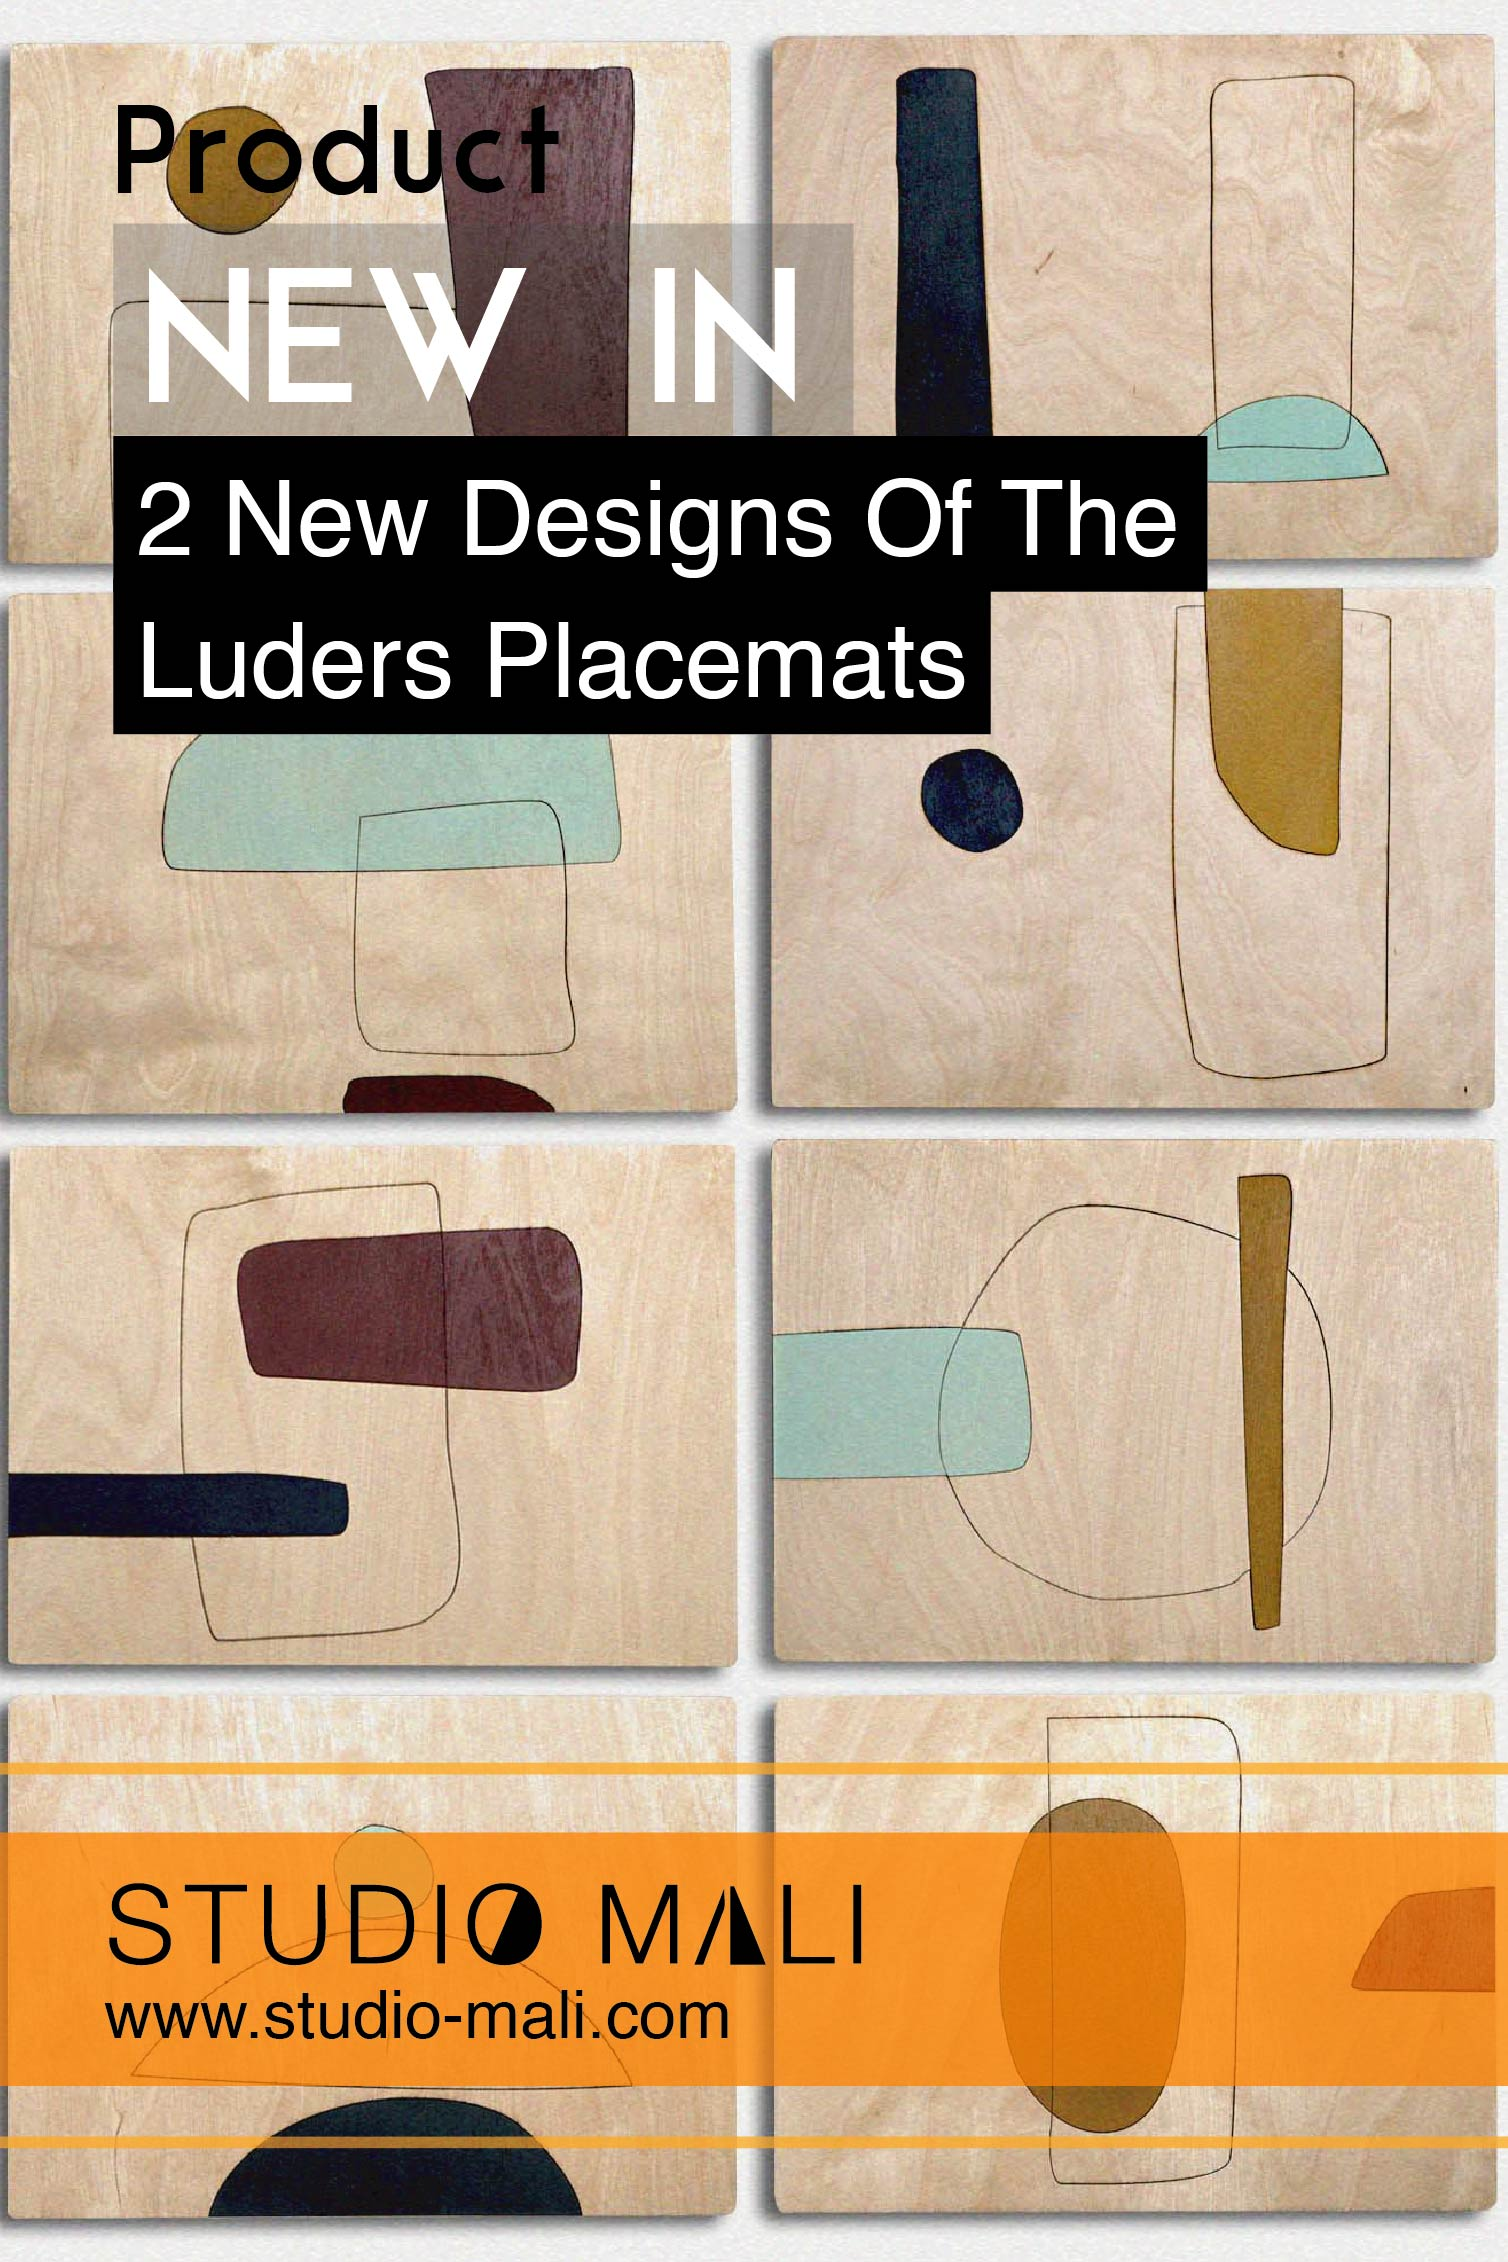 Product - 2 New Designs Of The Luders Placemats, by Studio Mali